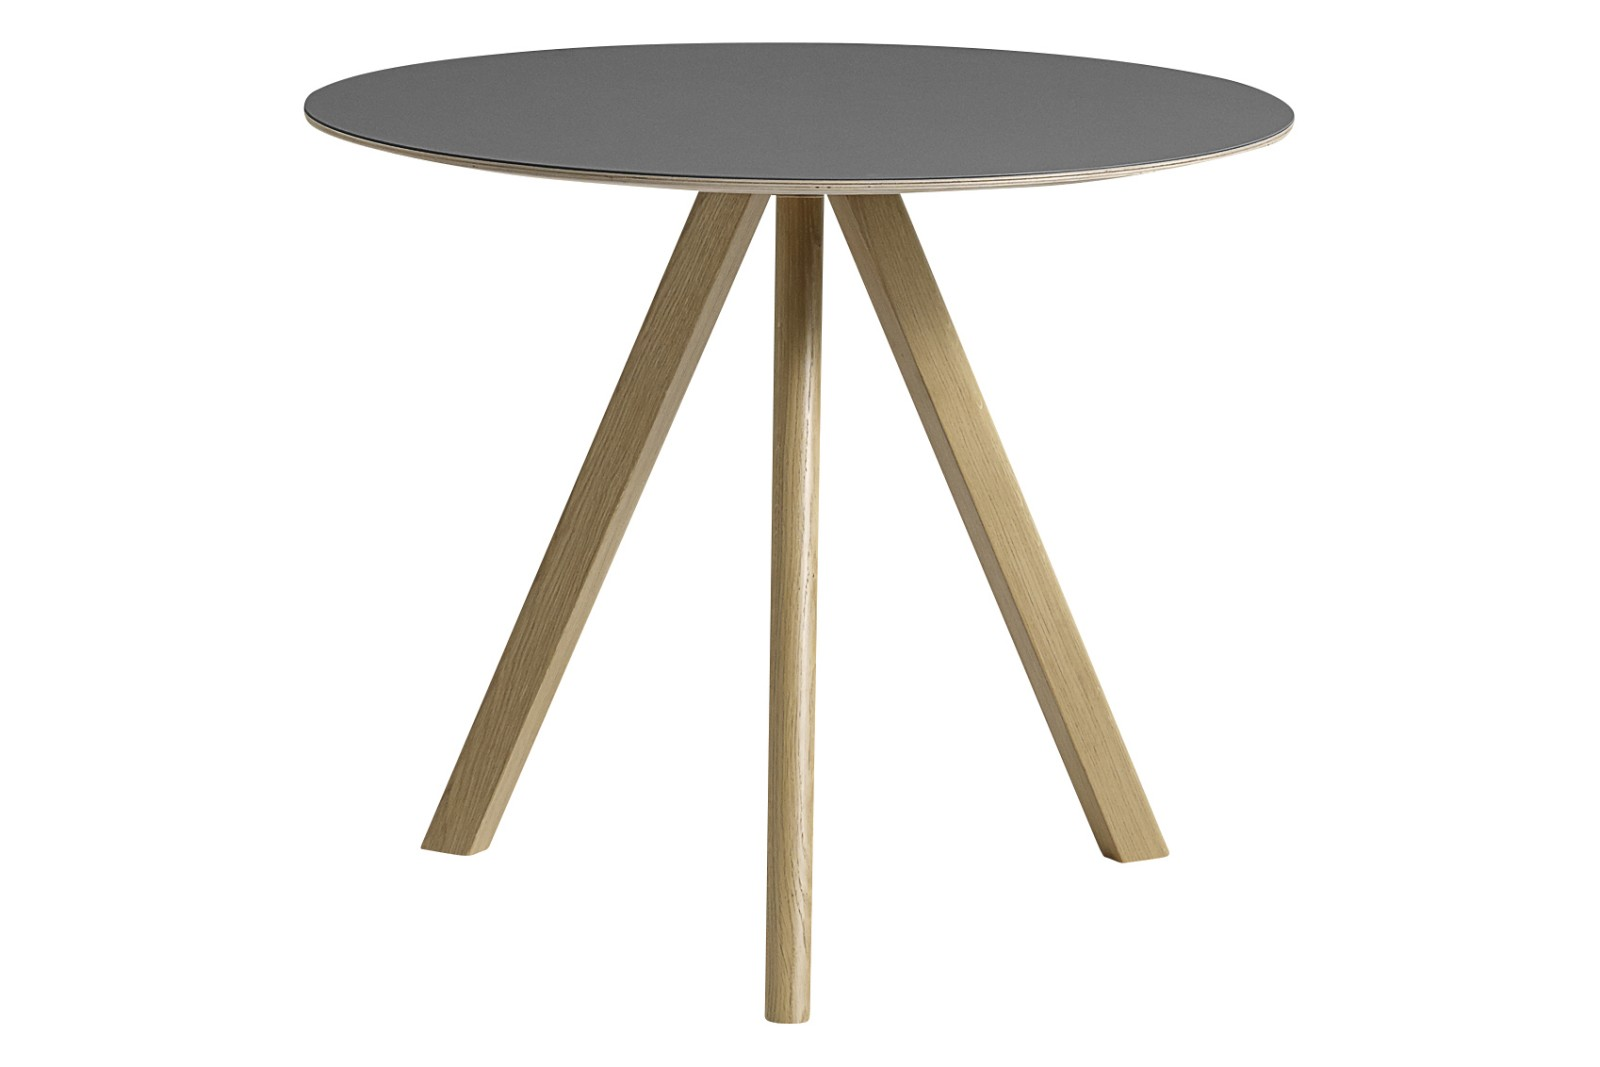 Copenhague Linoleum Top Round Dining Table CPH20 Clear Lacquered Oak Base, Grey Top, Small